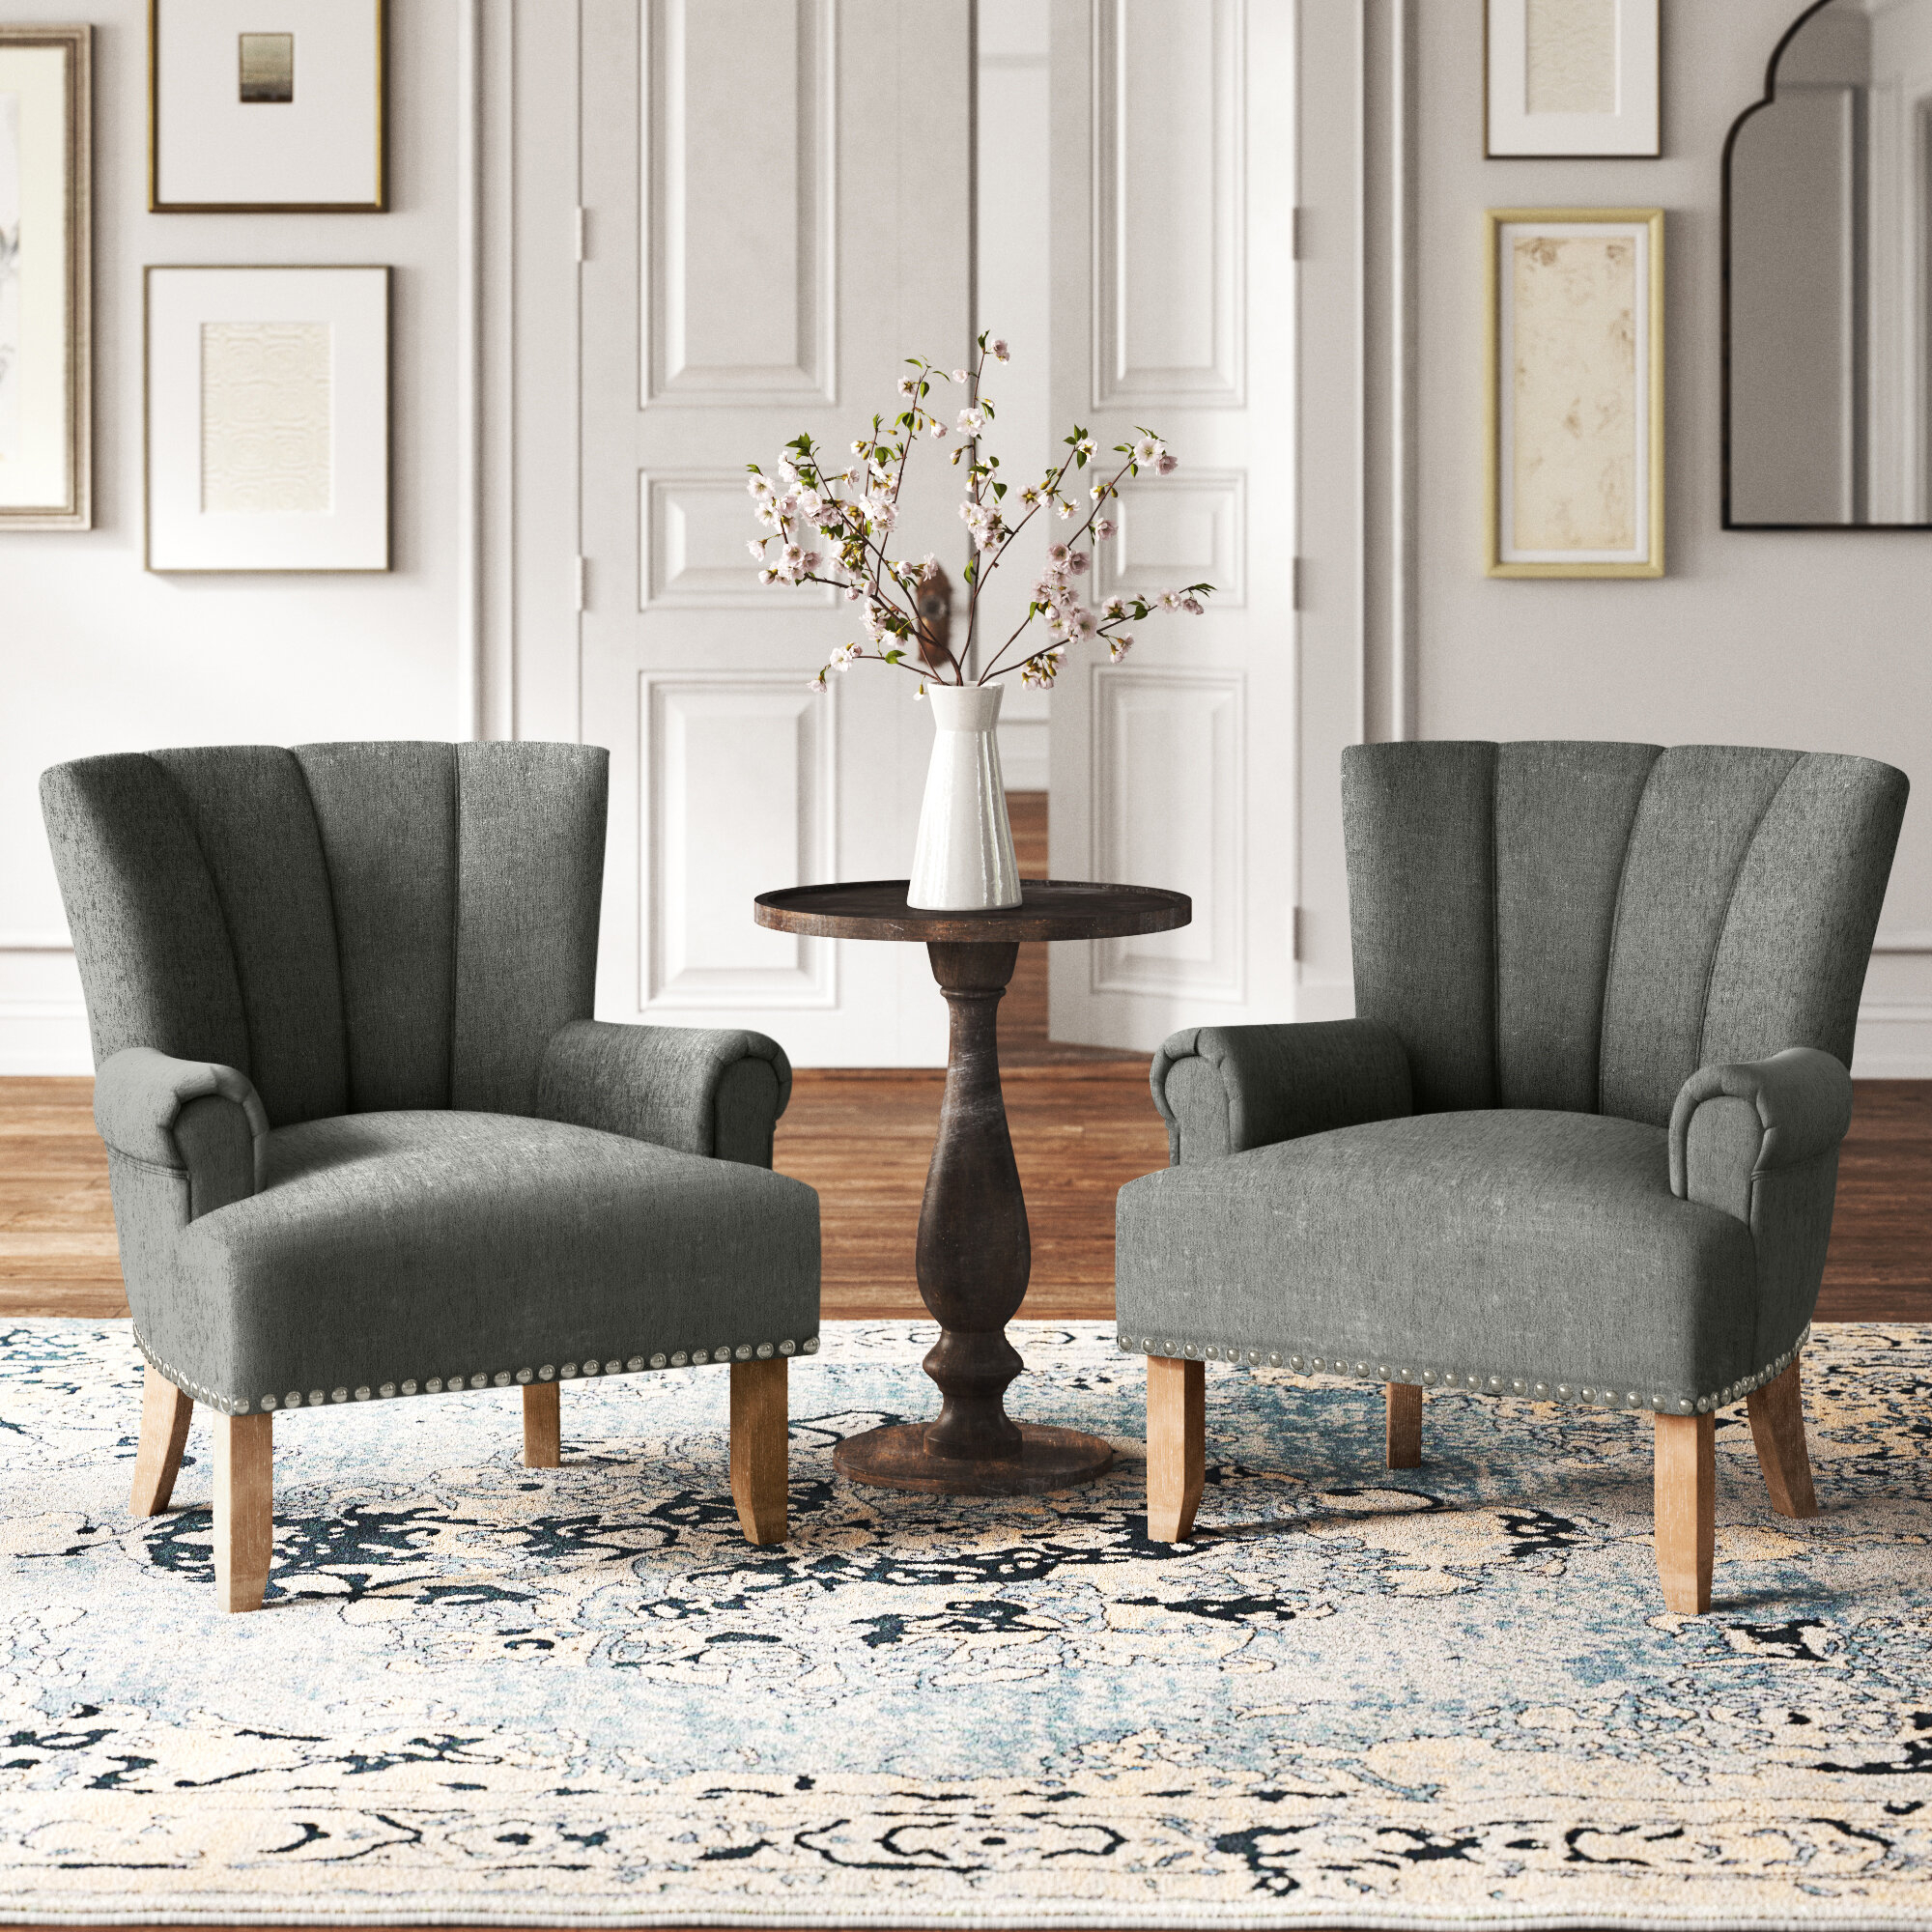 Arm Chair Set Accent Chairs You'Ll Love In 2021 | Wayfair Inside Georgina Armchairs (Set Of 2) (View 12 of 15)